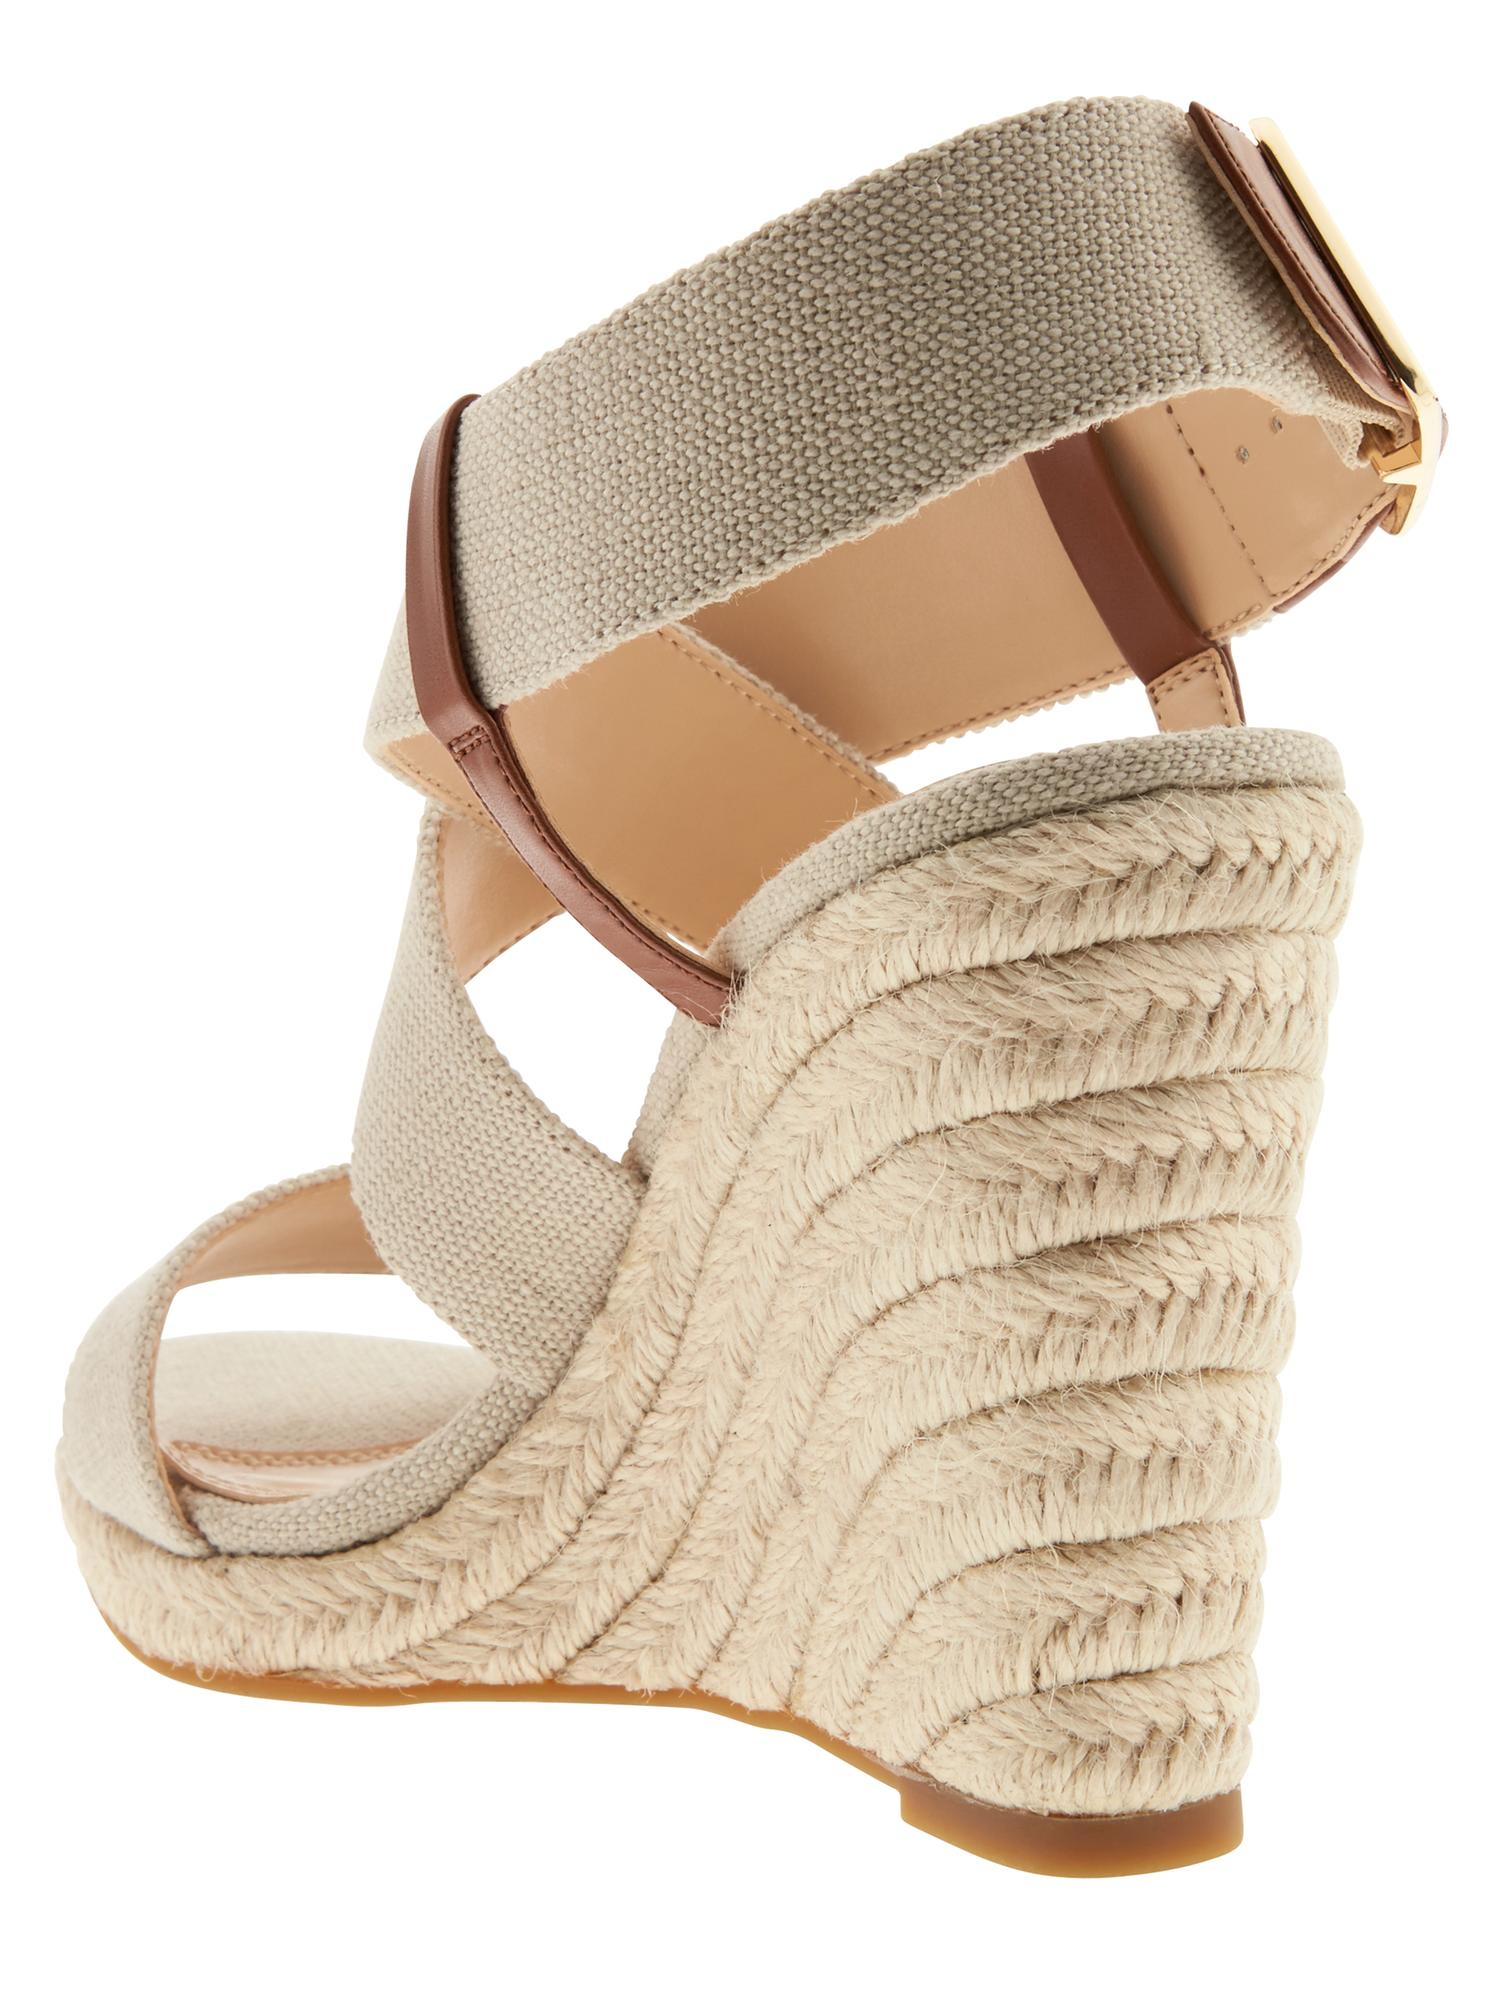 e96830d1e22 Lyst - Banana Republic Tecla Espadrille Sandal in Natural